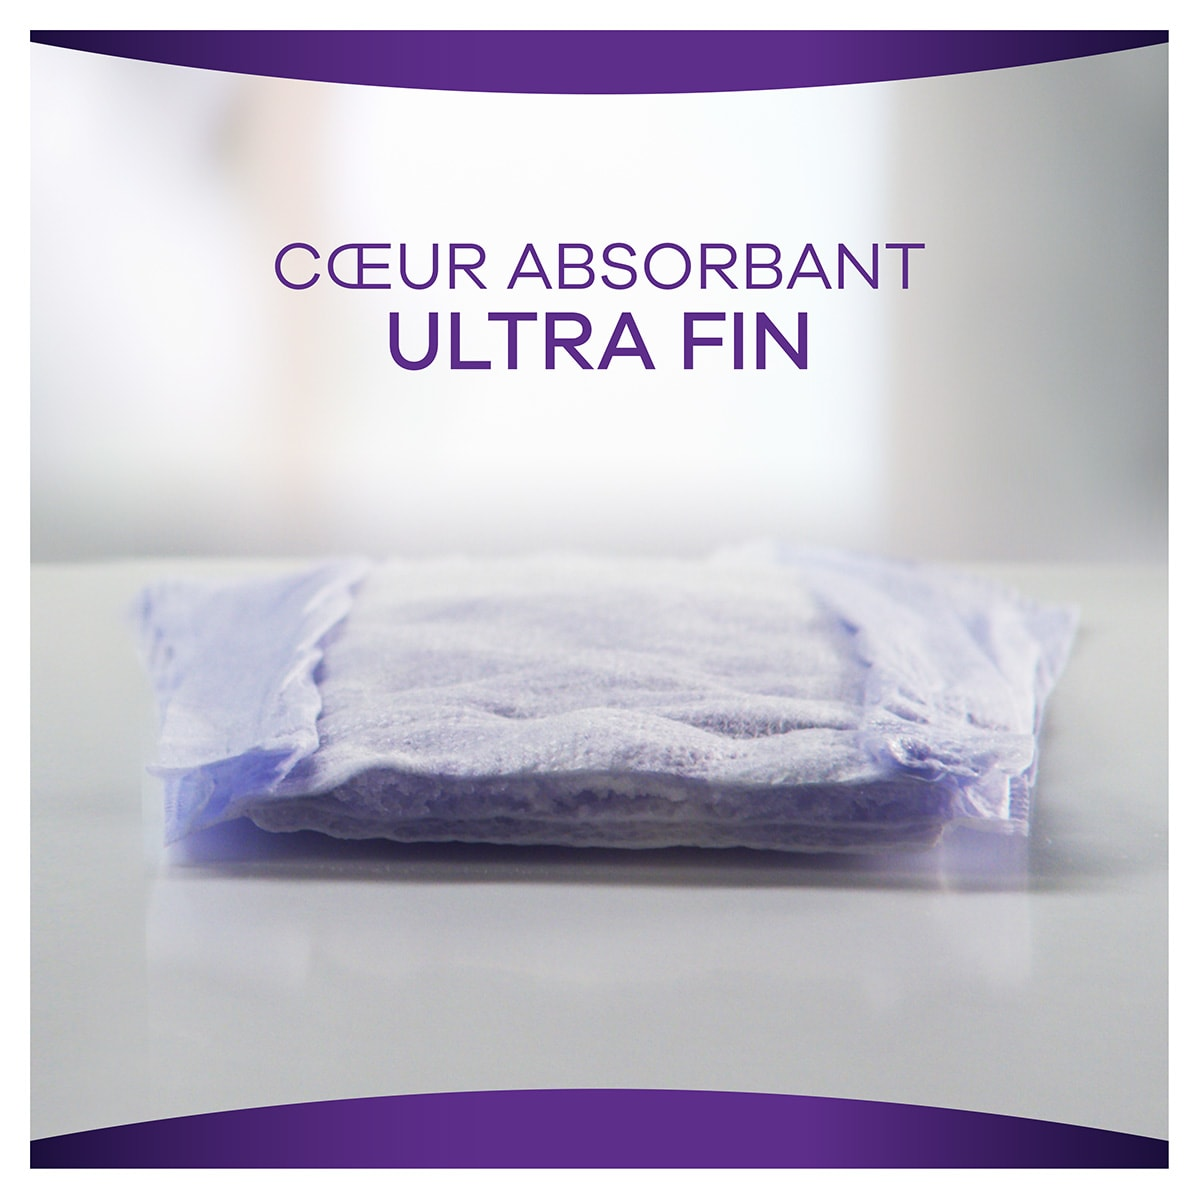 Coeur absorbant ultra fin